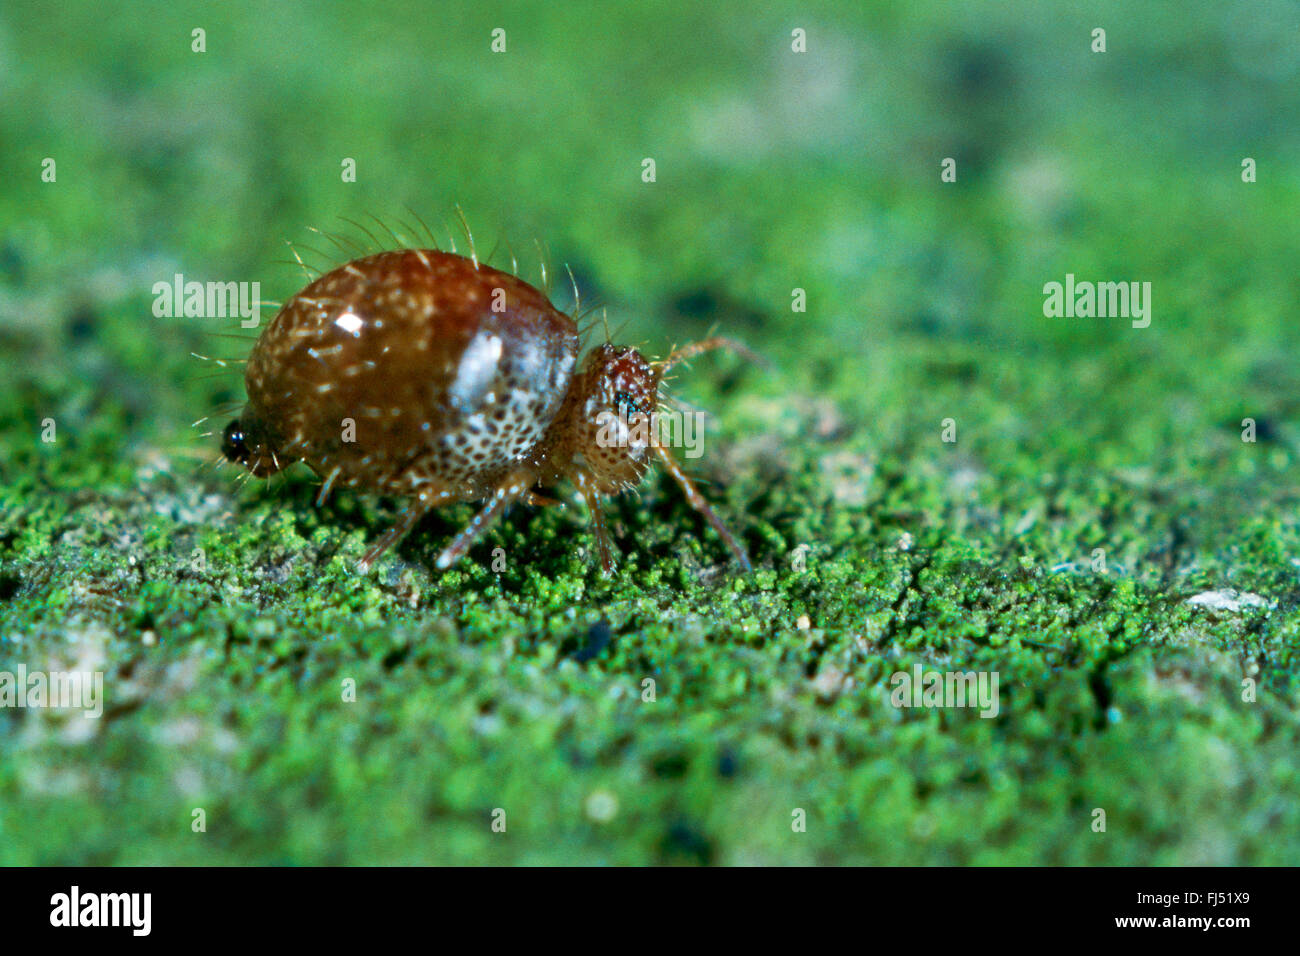 Springtail (Allacma fusca), insect of the year 2016, Germany - Stock Image